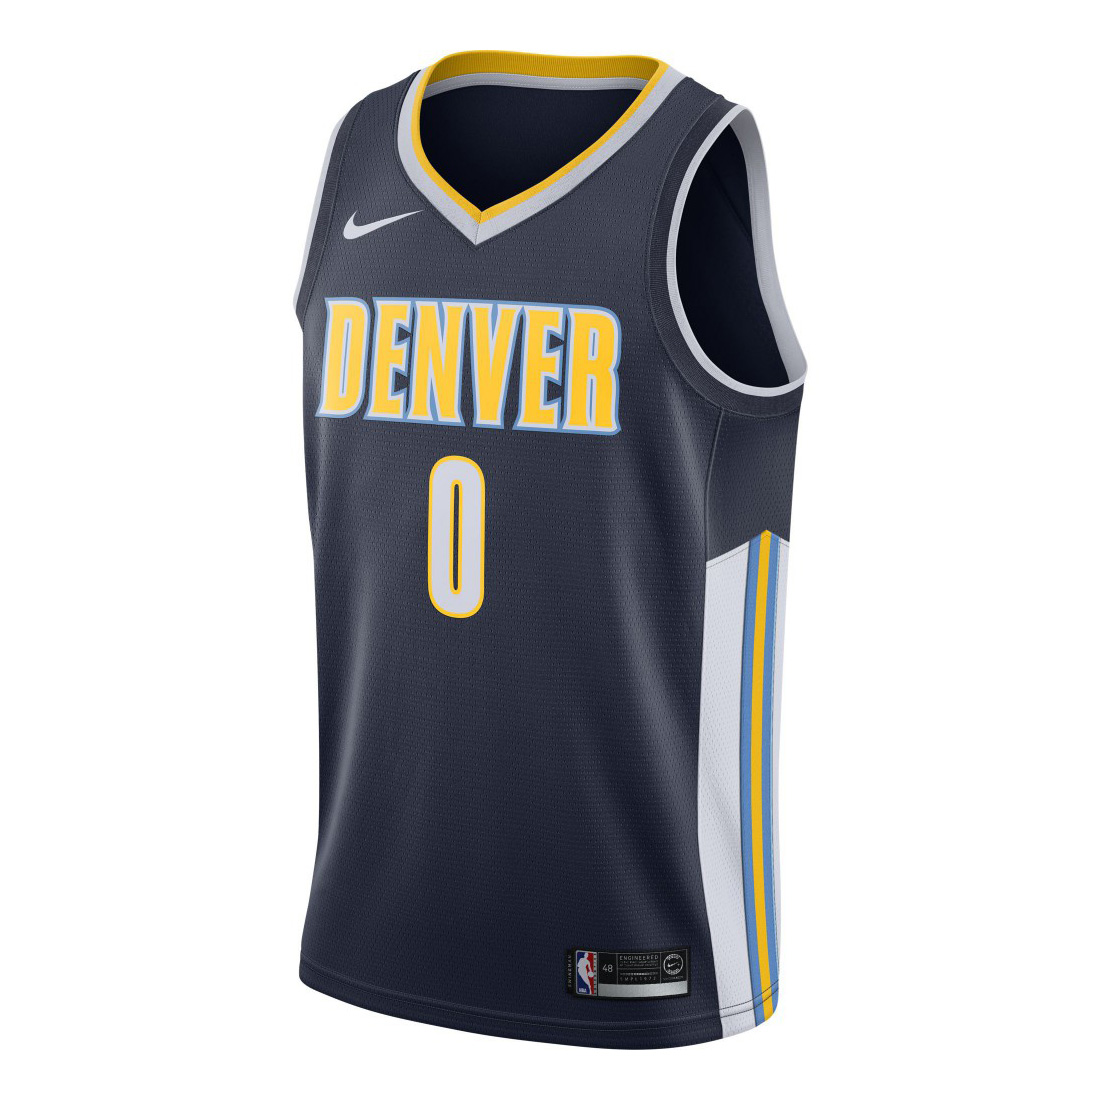 9ad285c90 Nike NBA Denver Nuggets Maillot Emmanuel Mudiay Icon Edition Swingman Jersey  - NBA Shop Others NBA Clubs Merchandise - Superfanas.lt